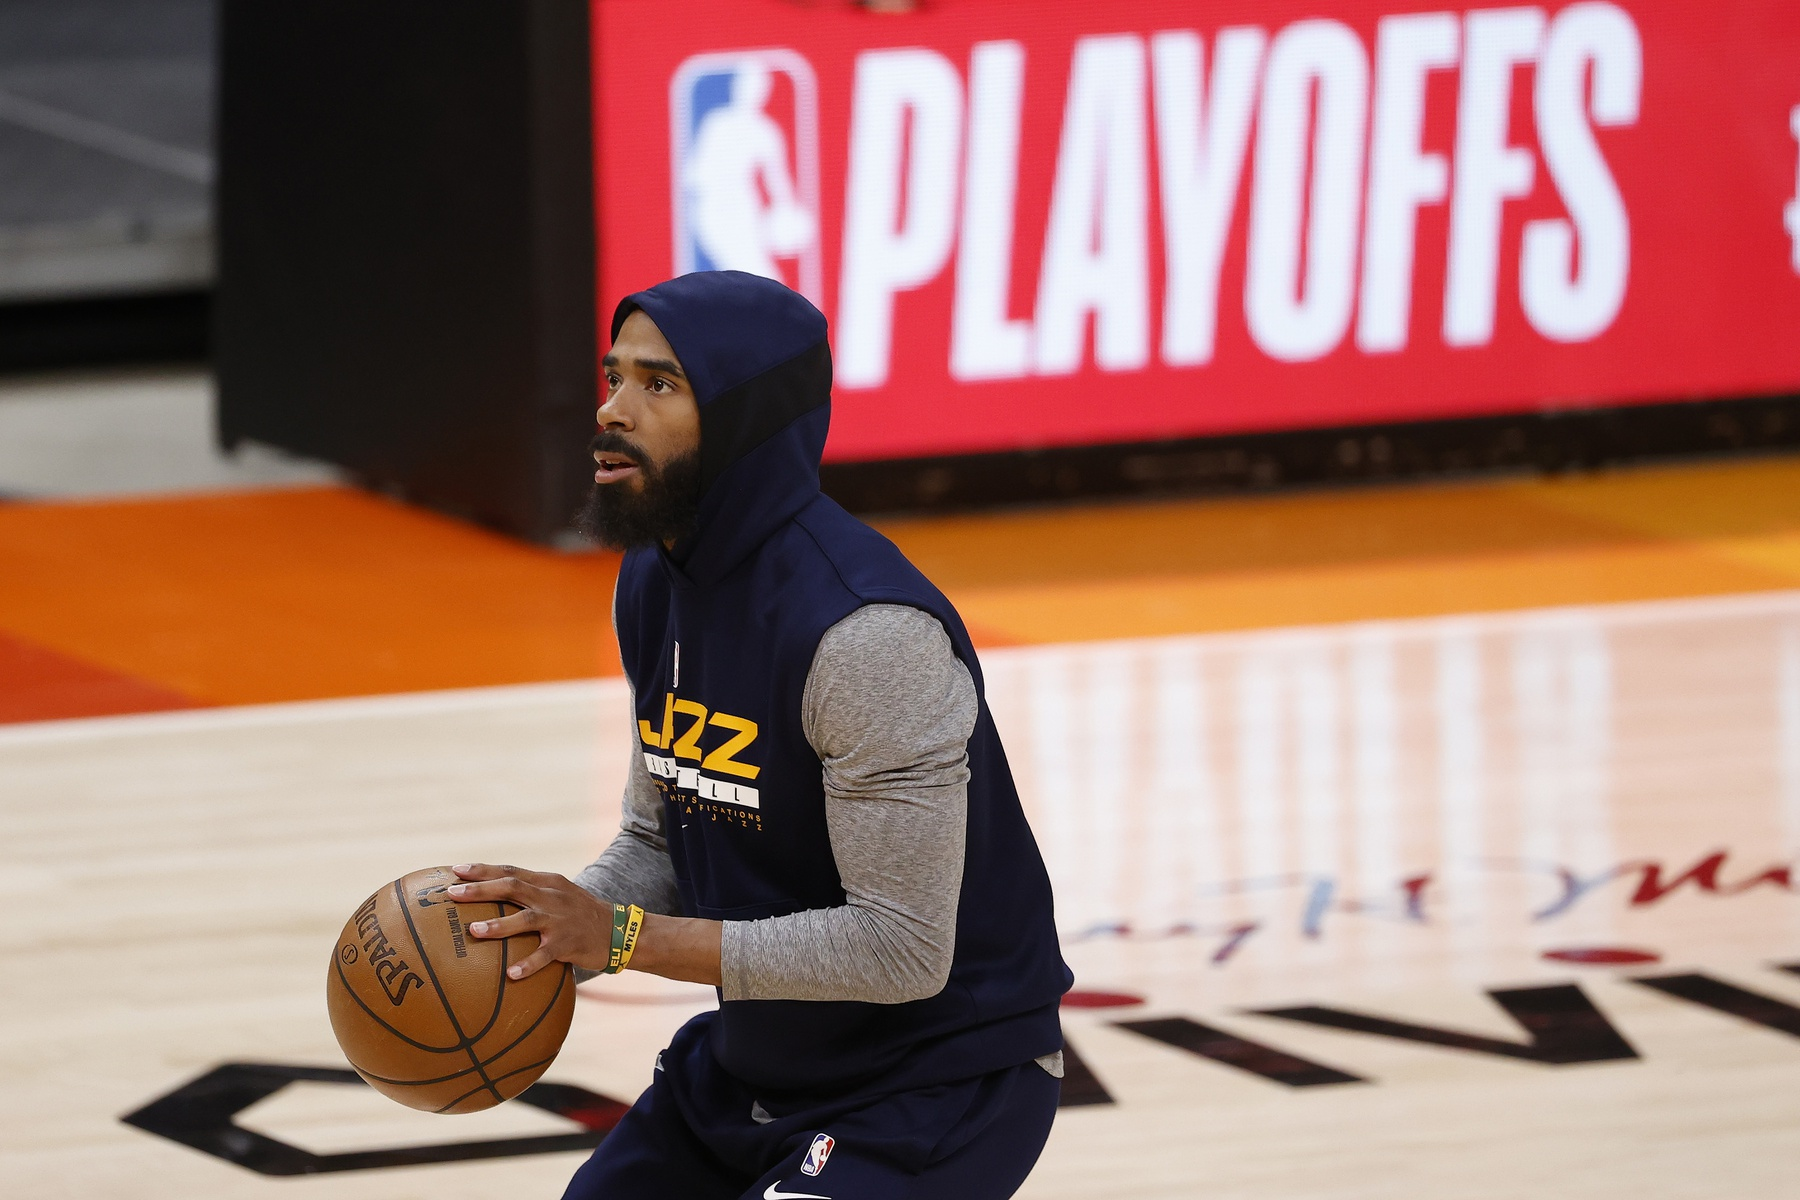 Mike Conley remains out for Game 4 vs. Clippers